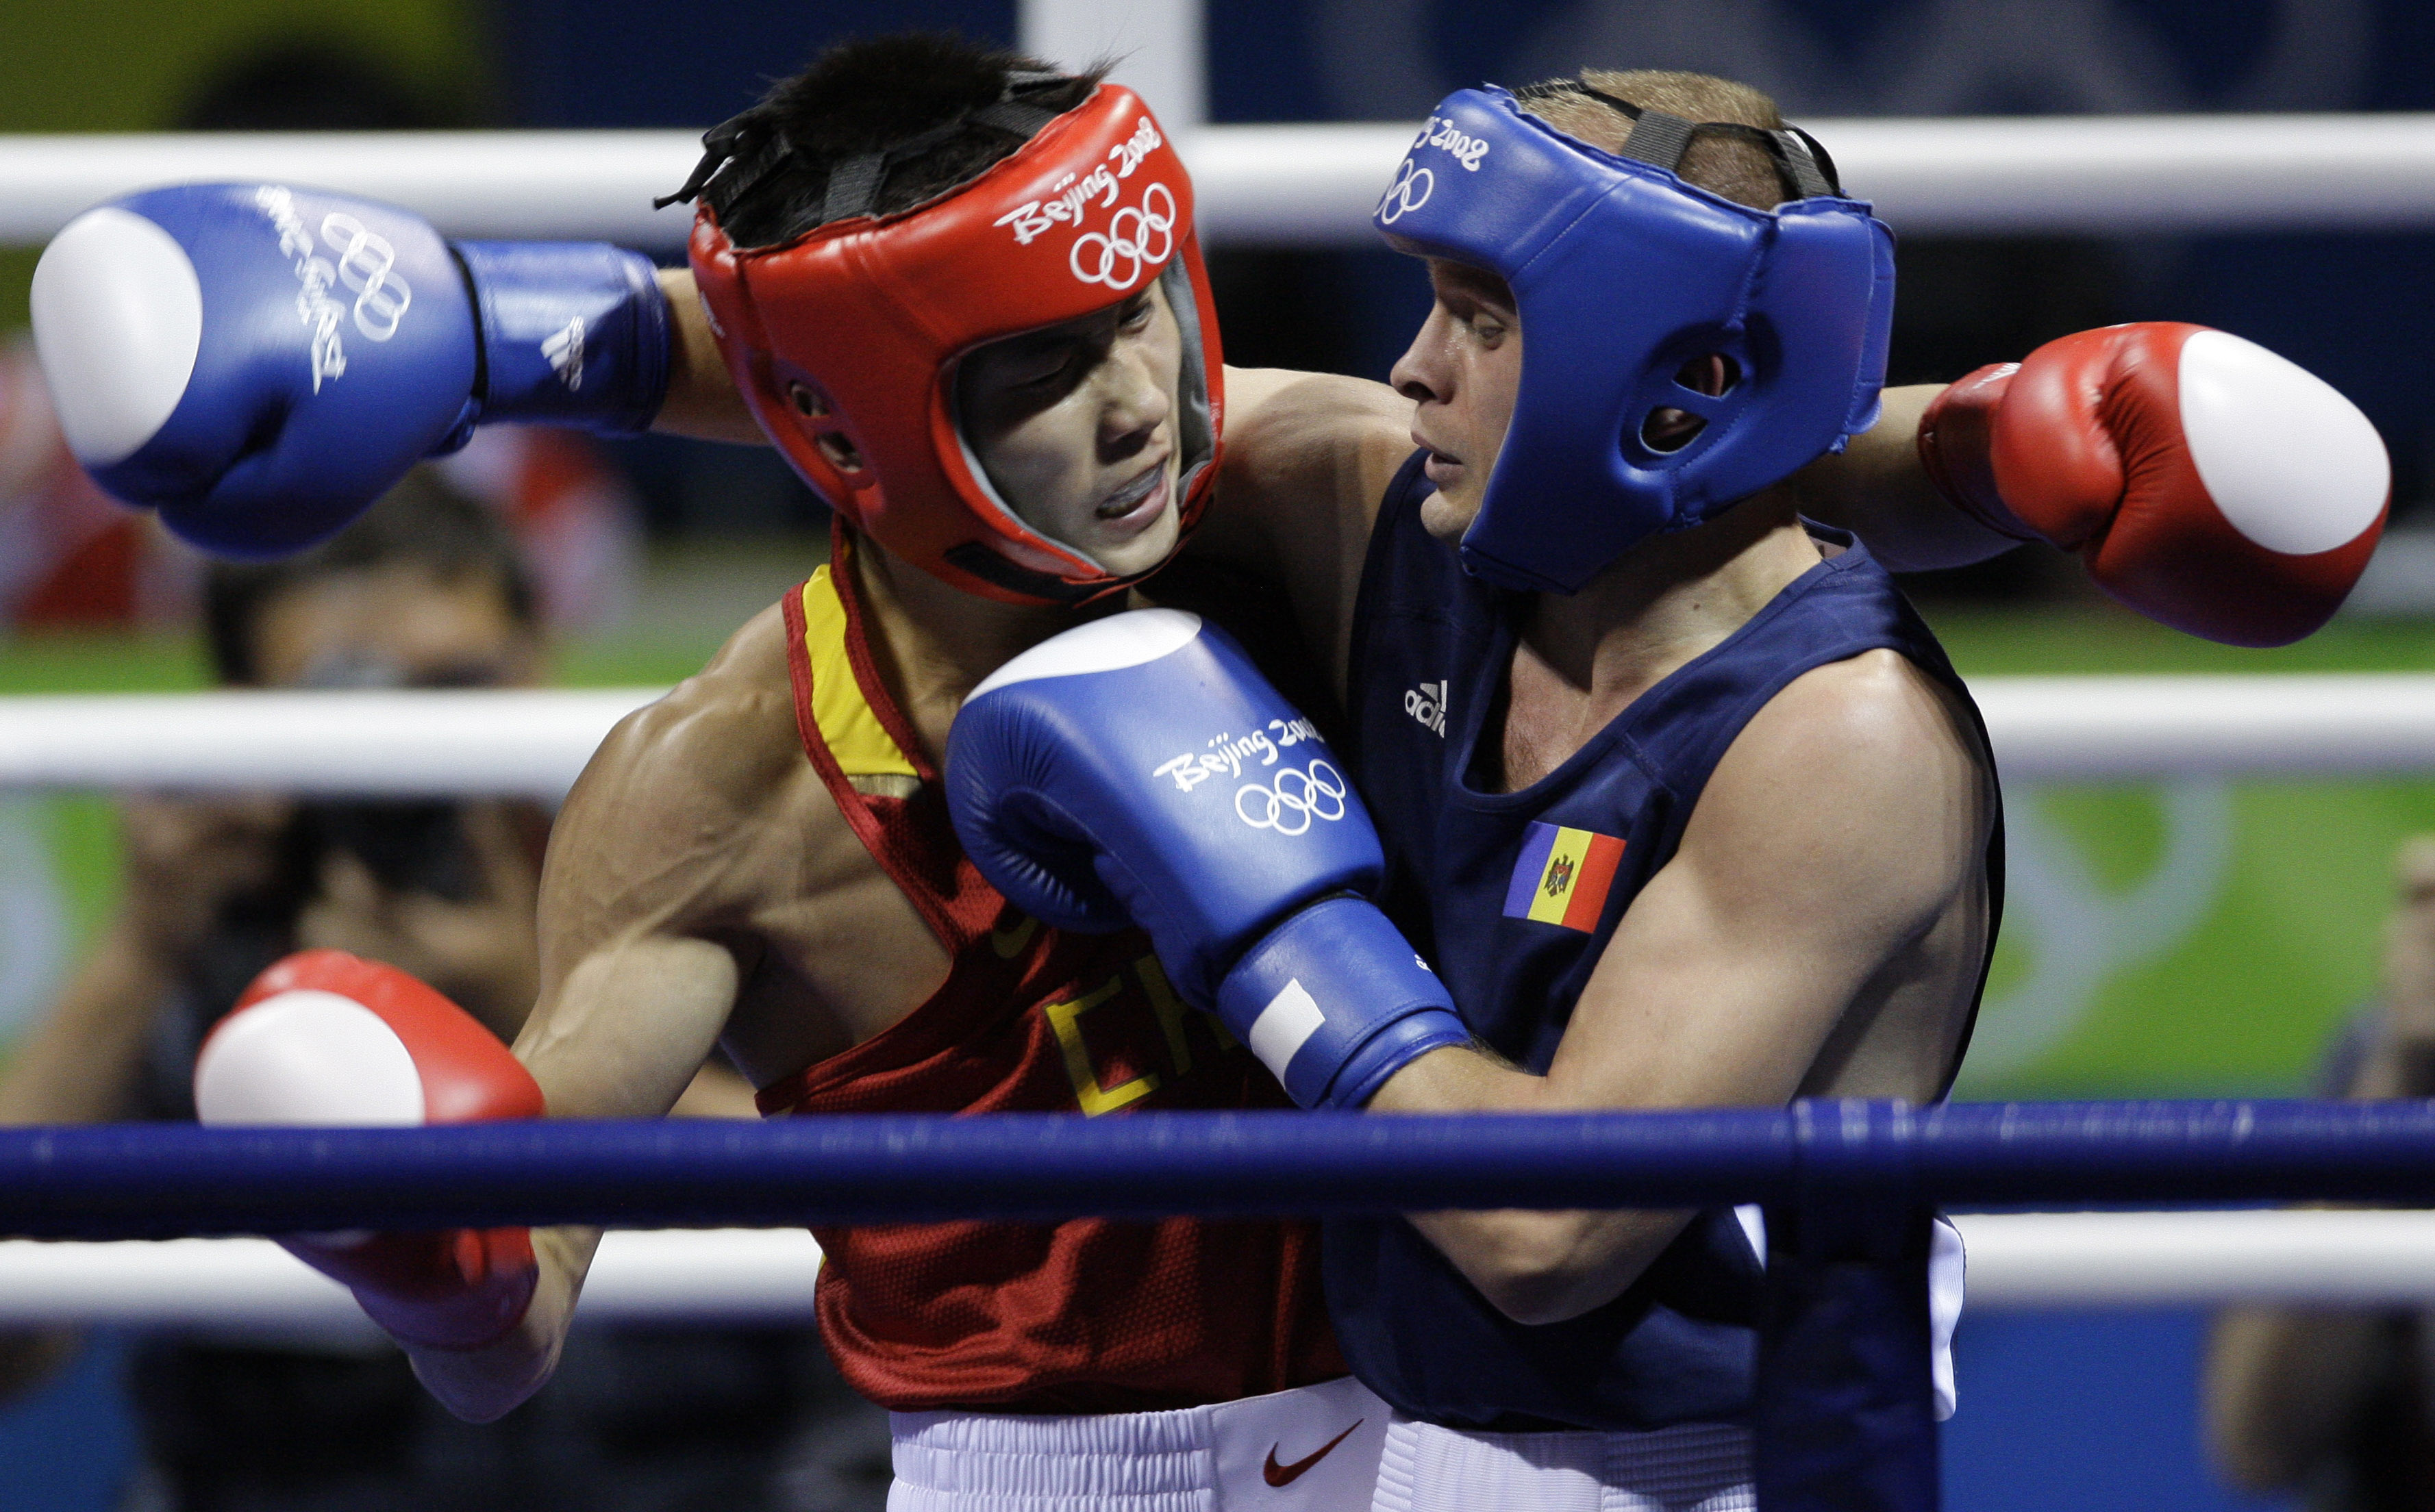 FILE - In this Aug. 15, 2008, file photo, Gu Yu of China, left, fights, Veaceslav Gojan of Moldova during a men's bantamweight 54 kilogram preliminary boxing match at the Beijing 2008 Olympics in Beijing. For the first time since 1980, men in Rio de Janei